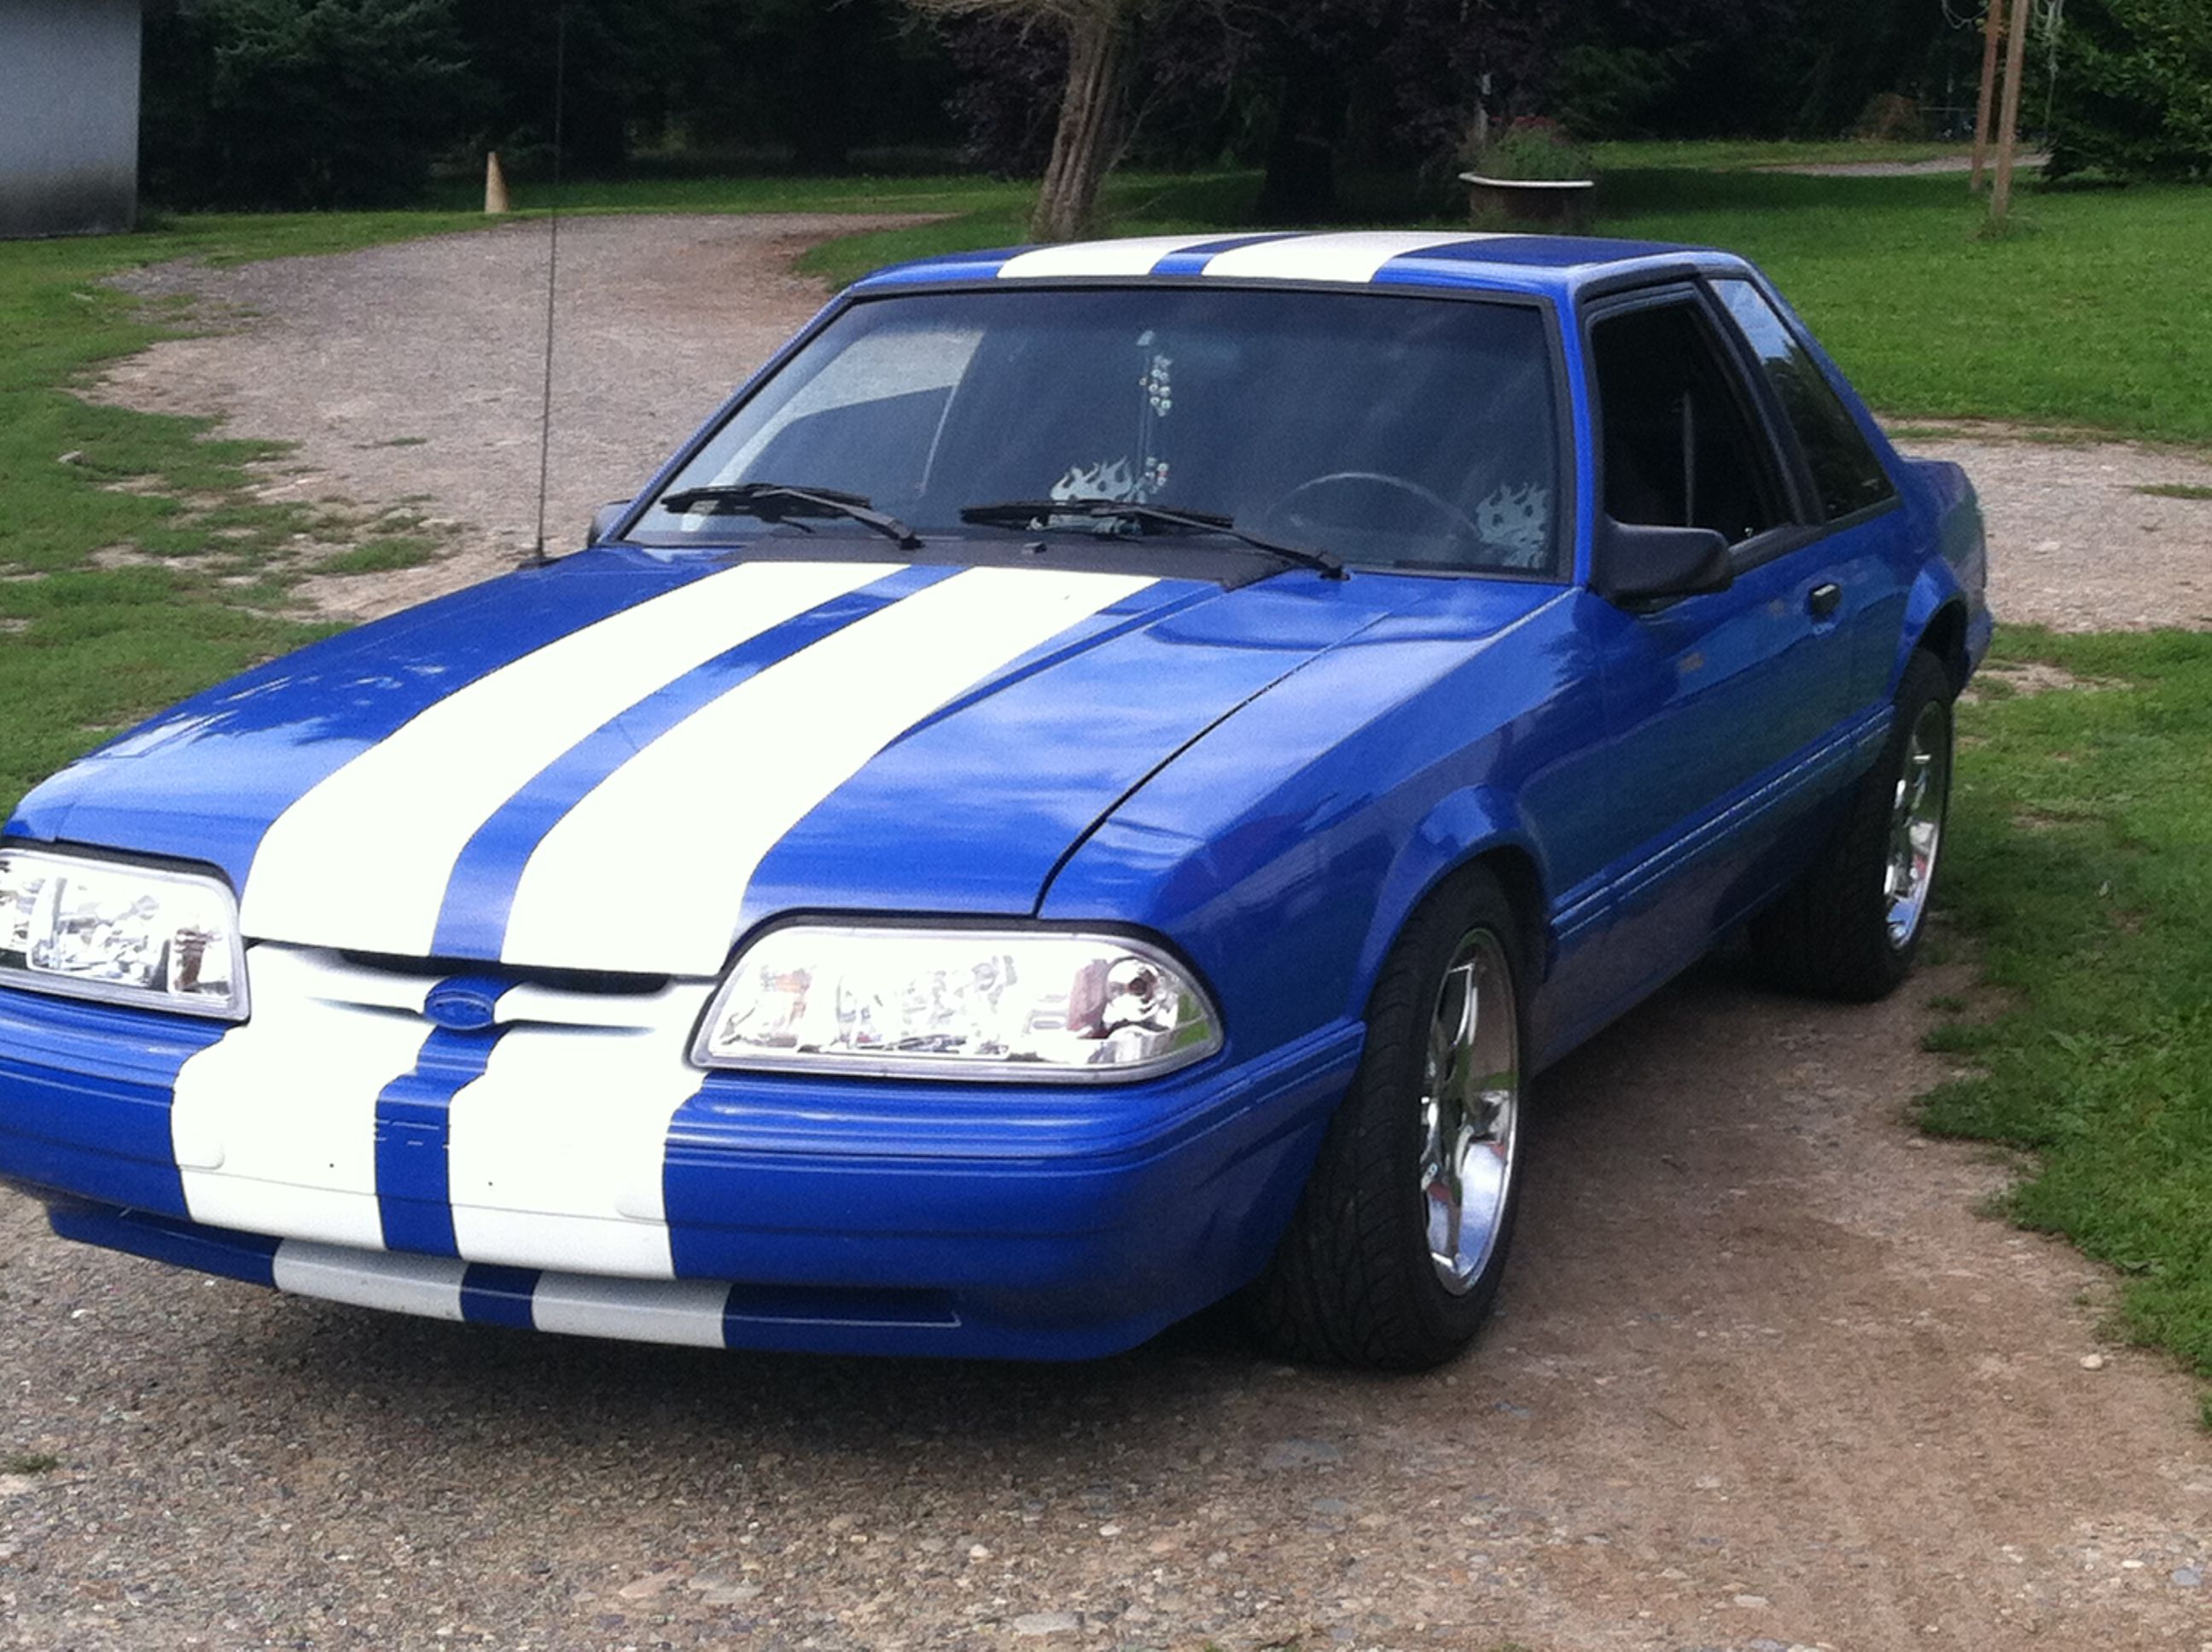 The MustangLast In Gonna Stroker Day Nice WeatherShe's Of Be 90 qzVpMSGU